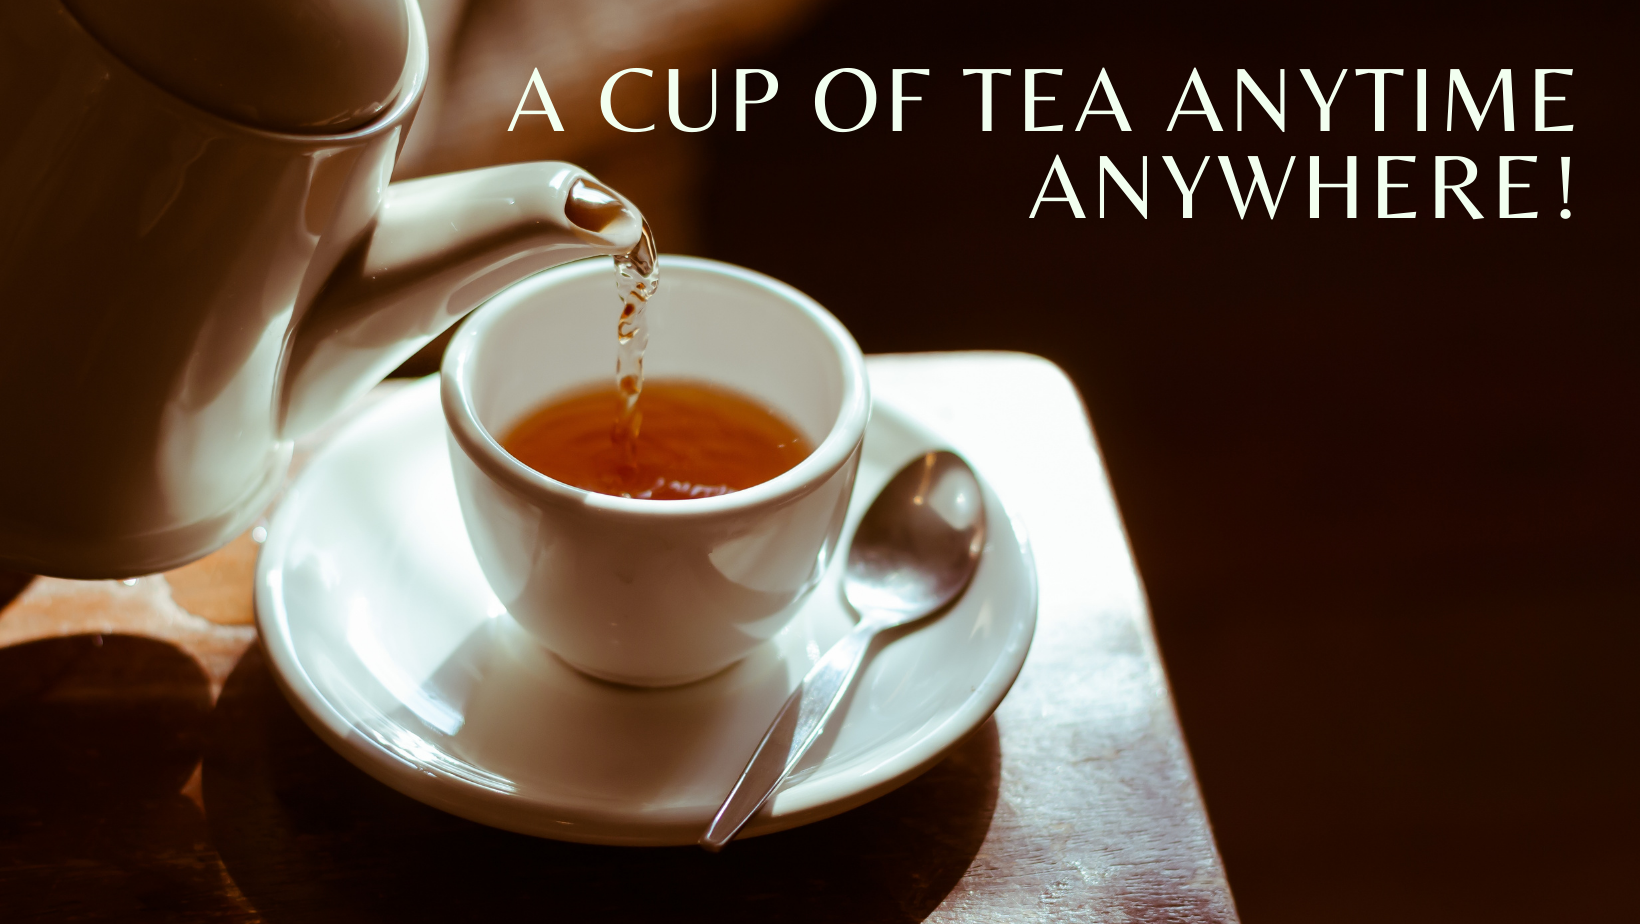 A Cup of Tea Anytime Anywhere!